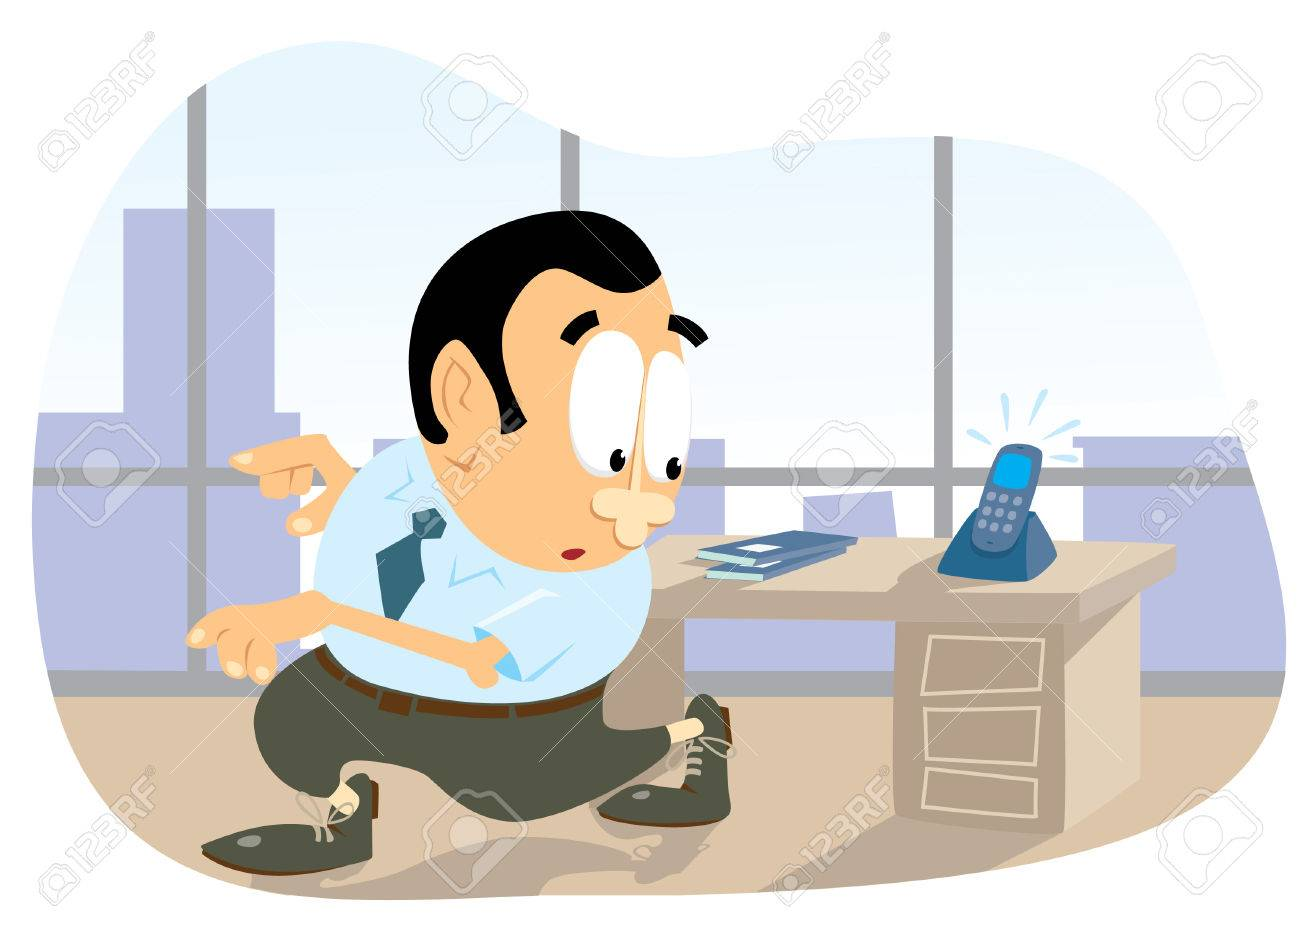 office clerk fleeing from a phone call royalty cliparts office clerk fleeing from a phone call stock vector 6188746